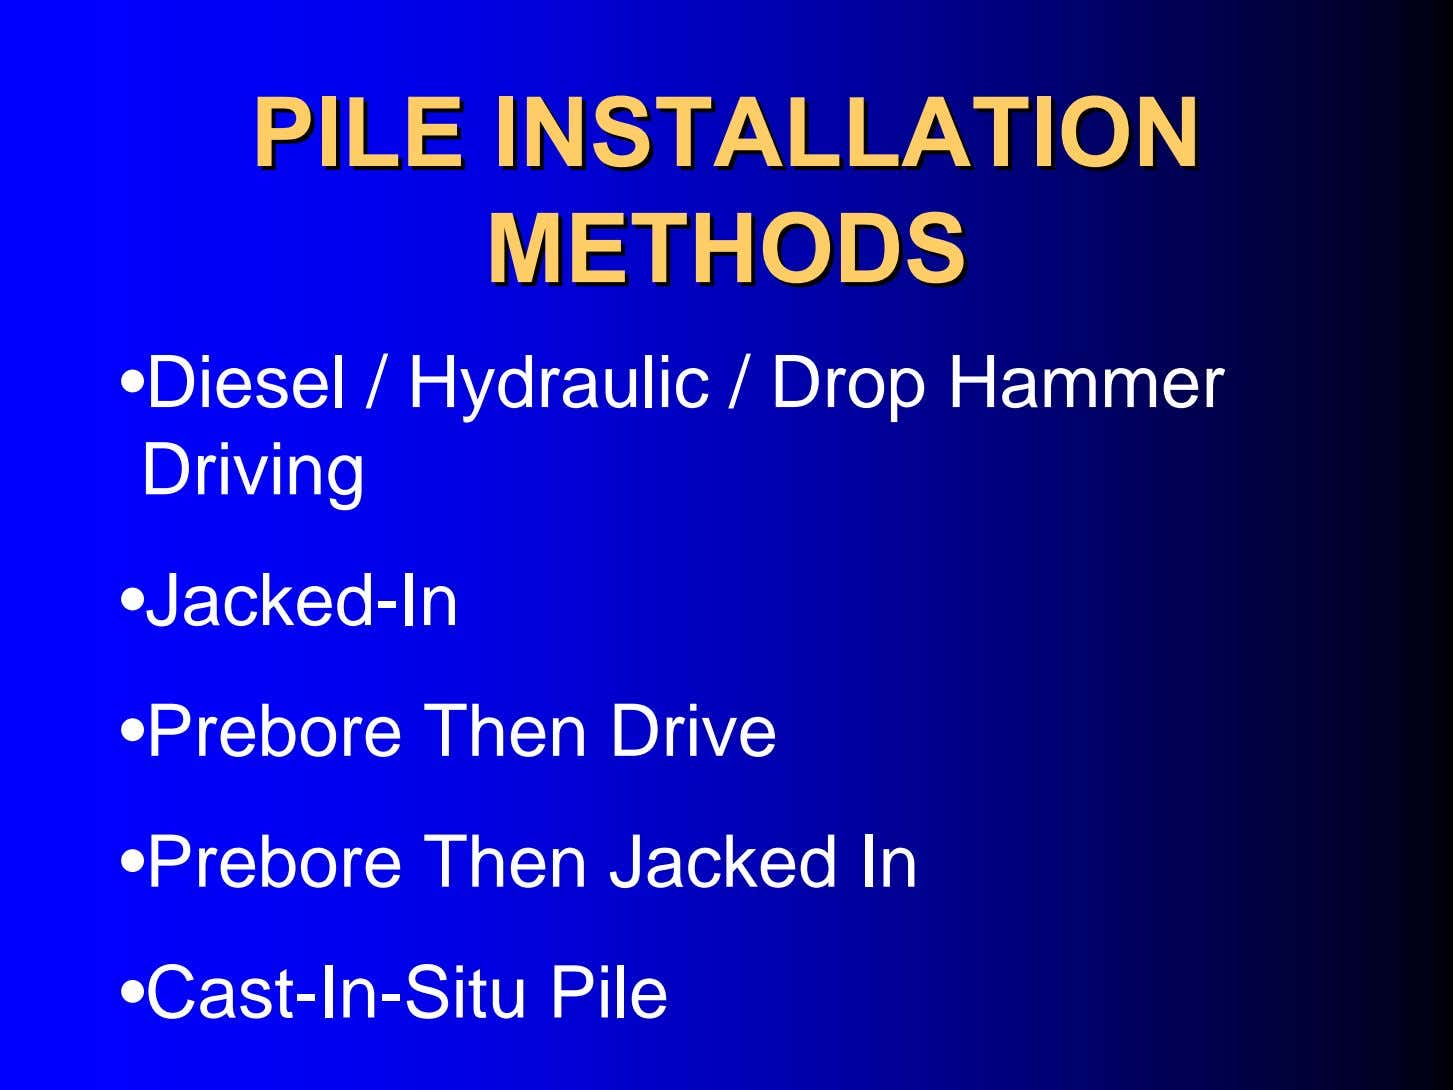 PILEPILE INSTALLATIONINSTALLATION METHODSMETHODS •Diesel / Hydraulic / Drop Hammer Driving •Jacked-In •Prebore